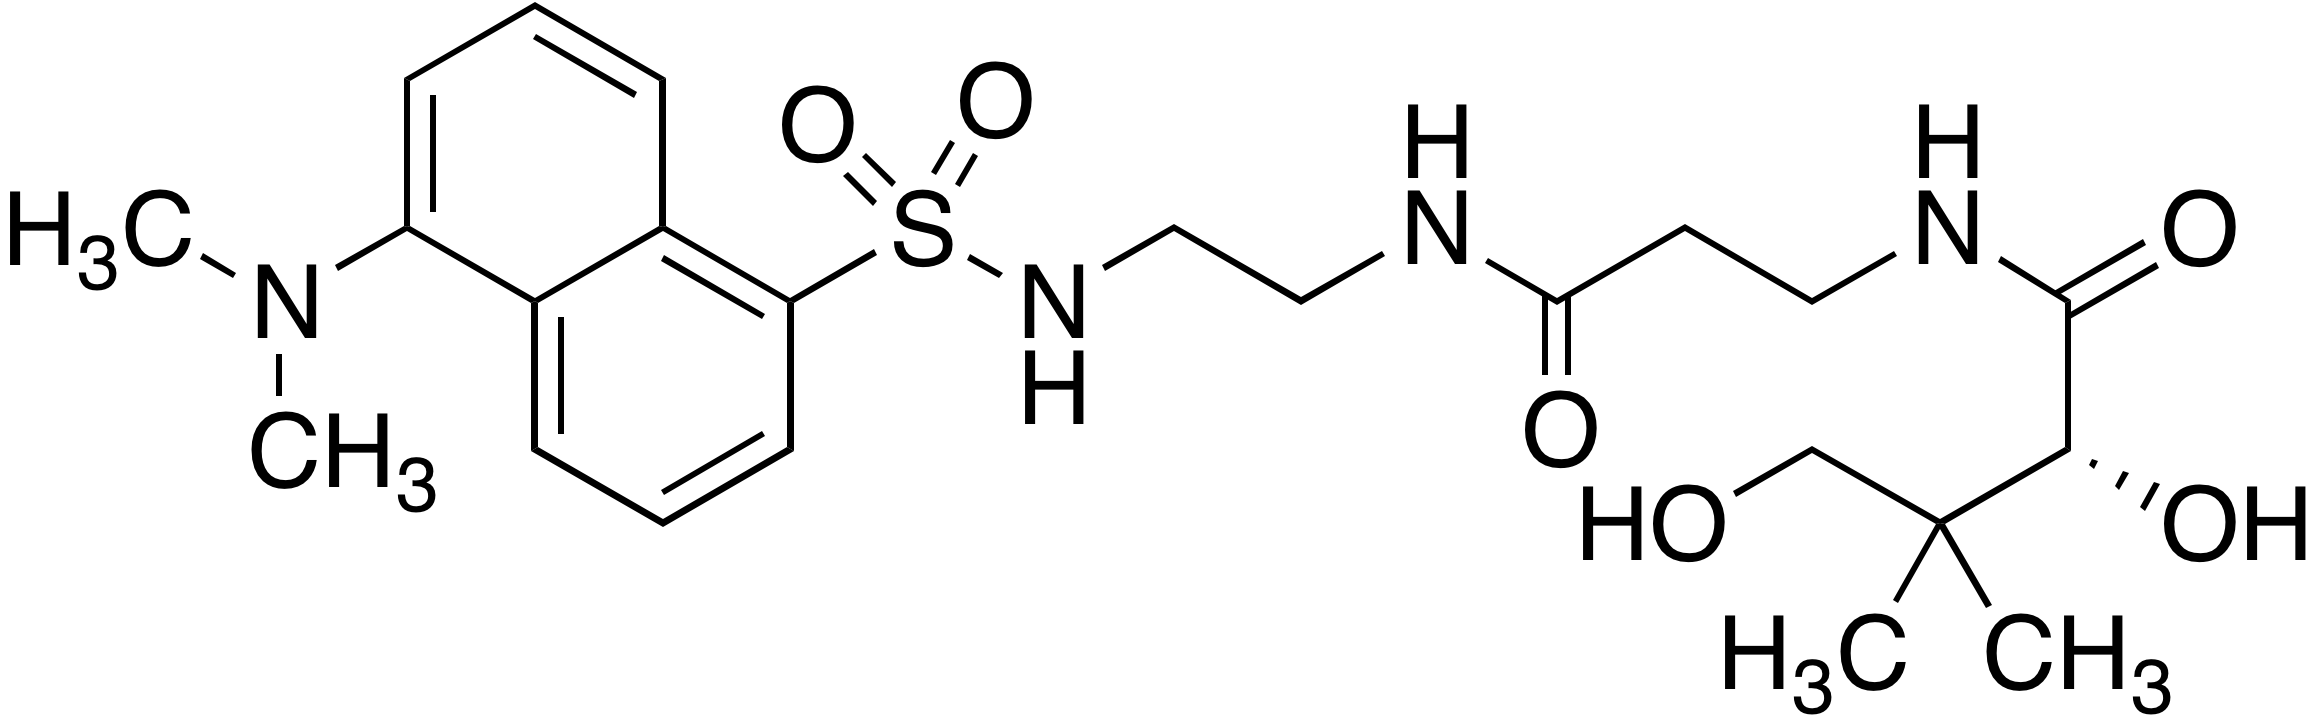 Dansyl-(<em>R</em>)-<em>N</em>-(3-((2-aminoethyl)amino)-3-oxopropyl)-2,4-dihydroxy-3,3-dimethylbutanamide